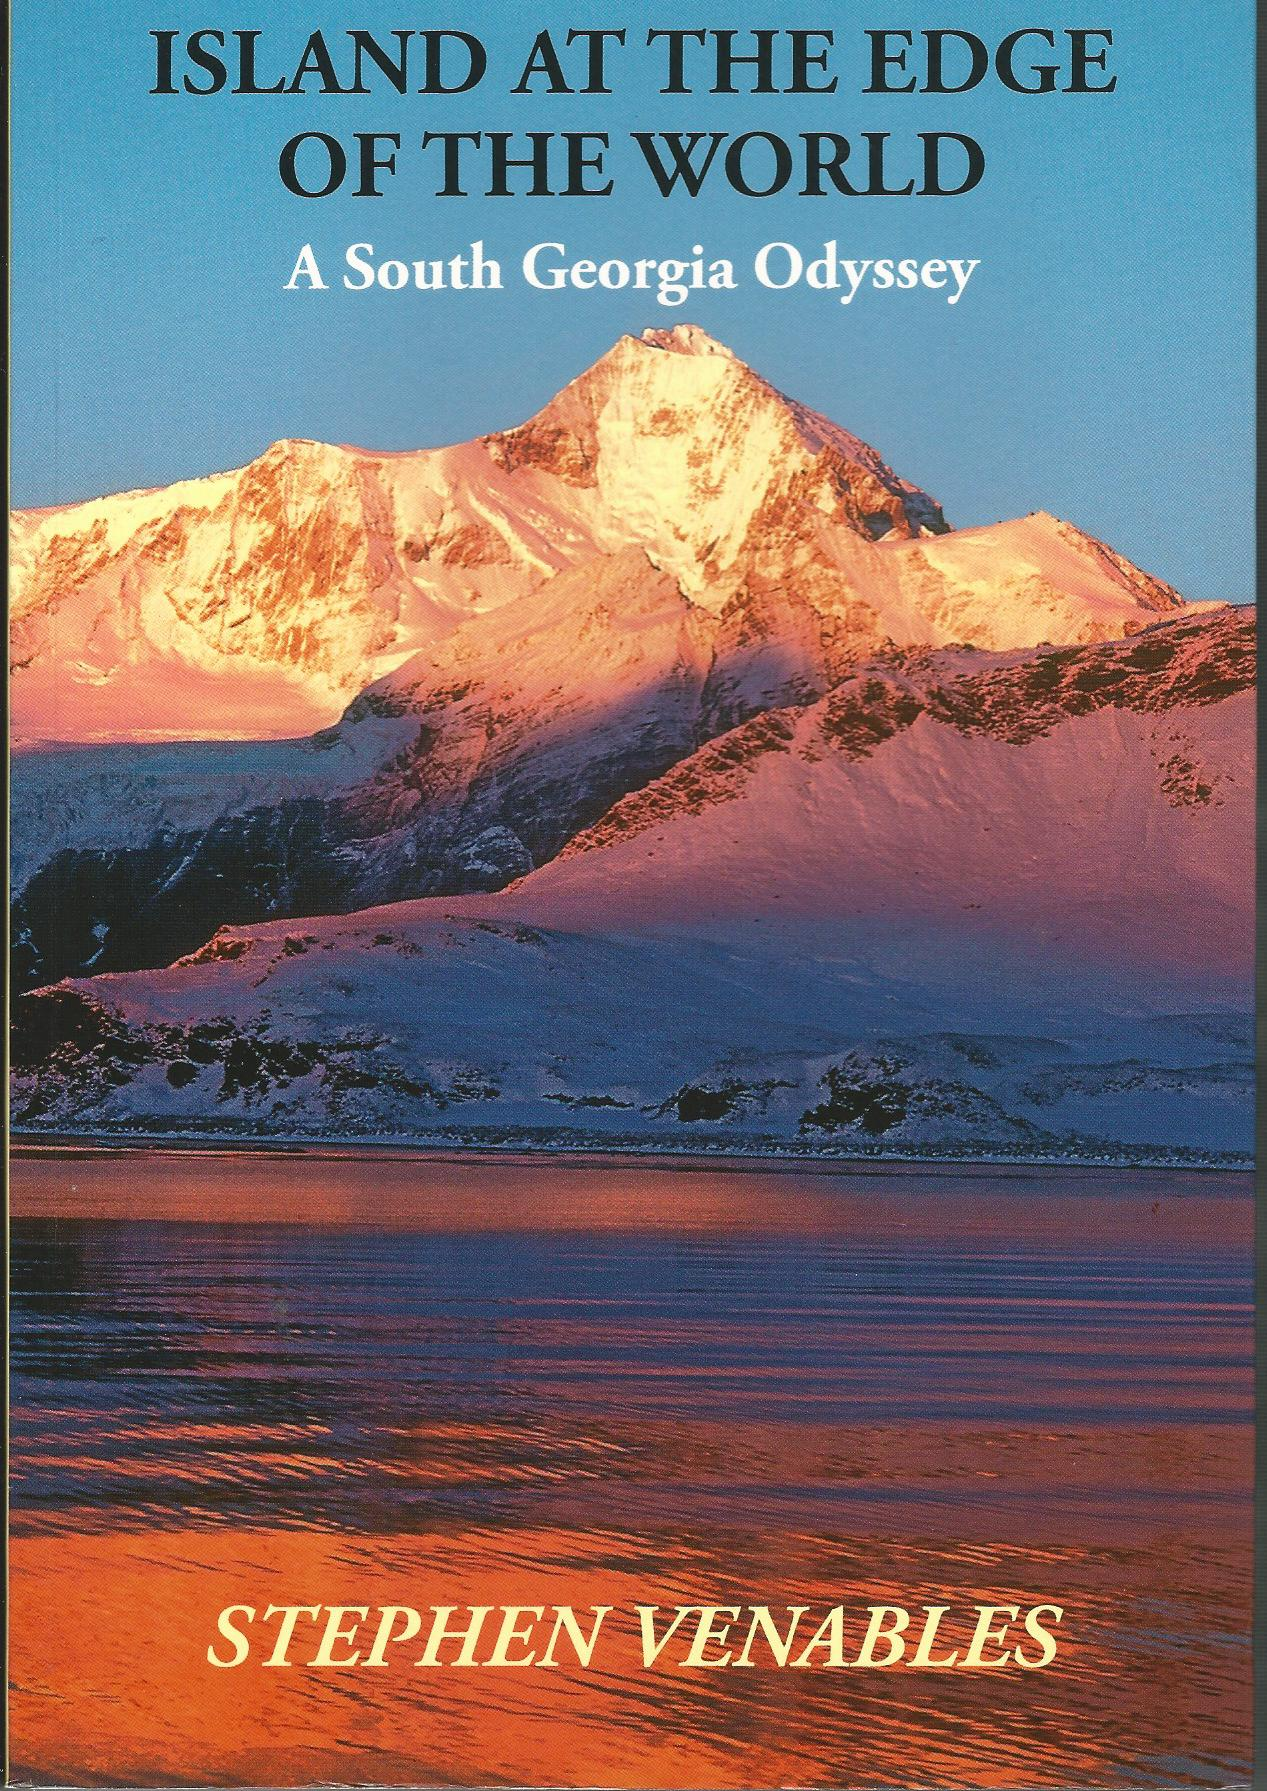 Image for Island at the Edge of the World: A South Georgia Odyssey.